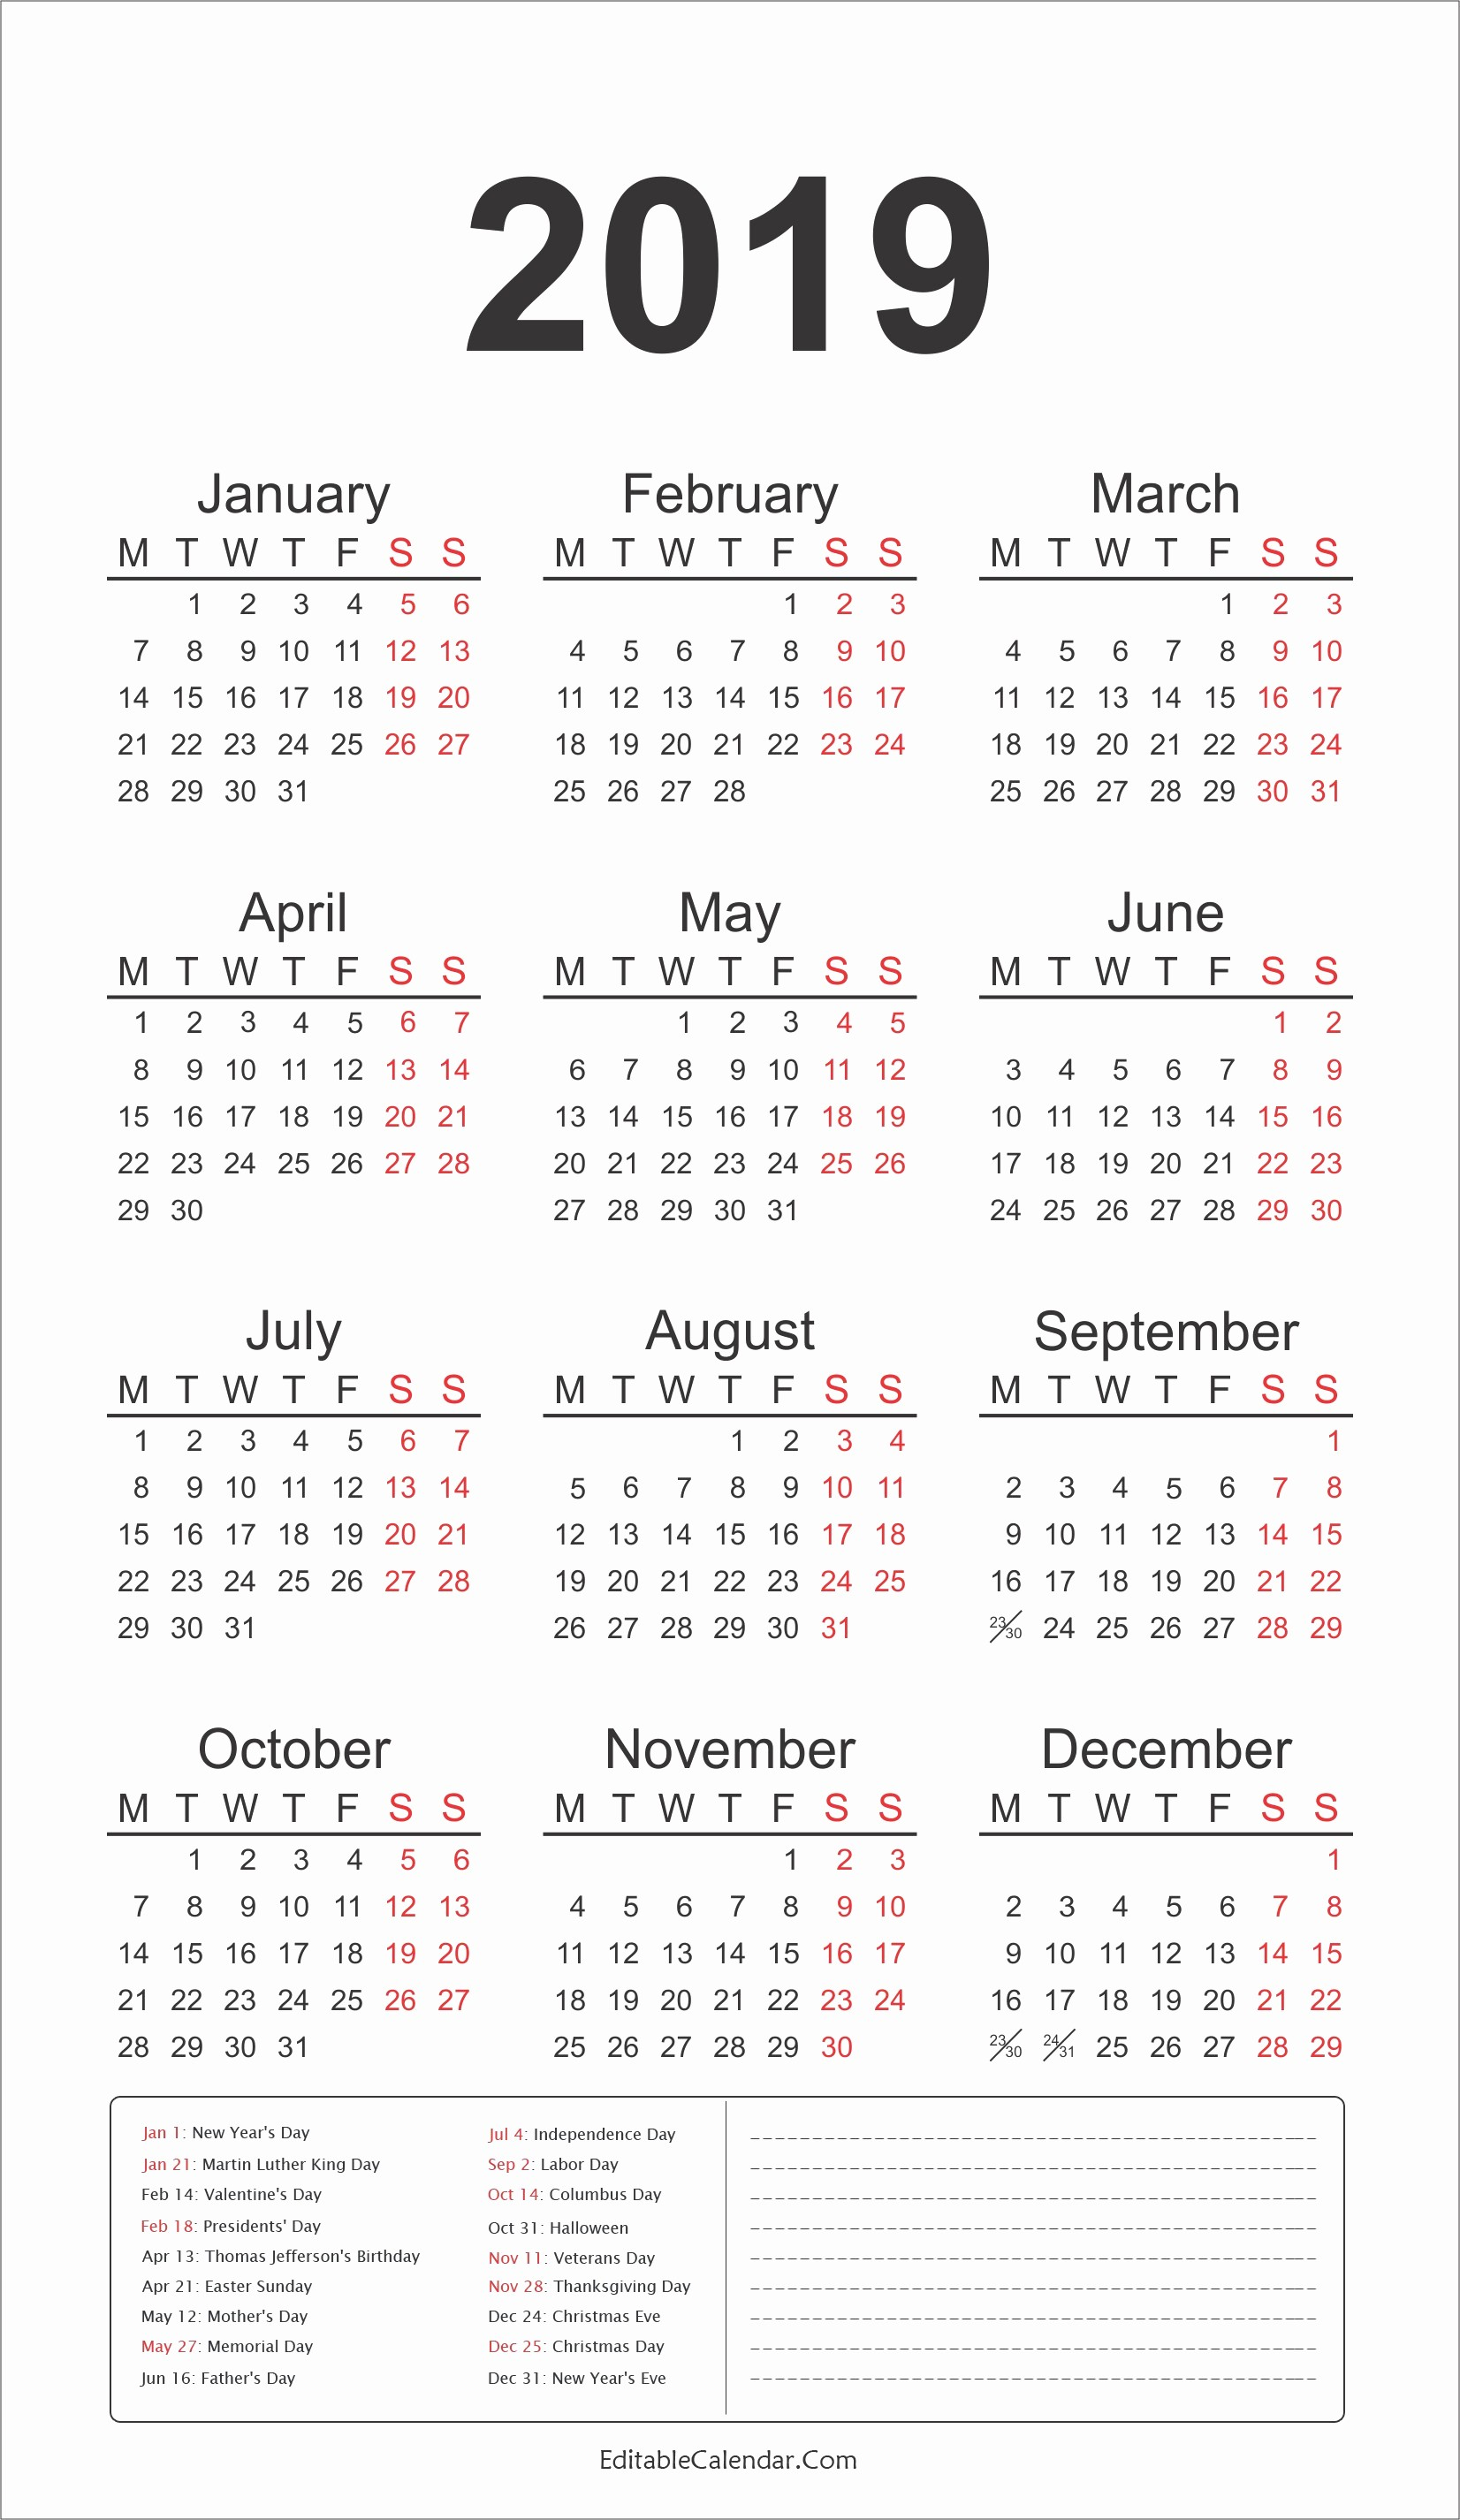 2019 Yearly Calendar with Holidays Awesome 2019 Calendar with Federal Holidays Printable 2019